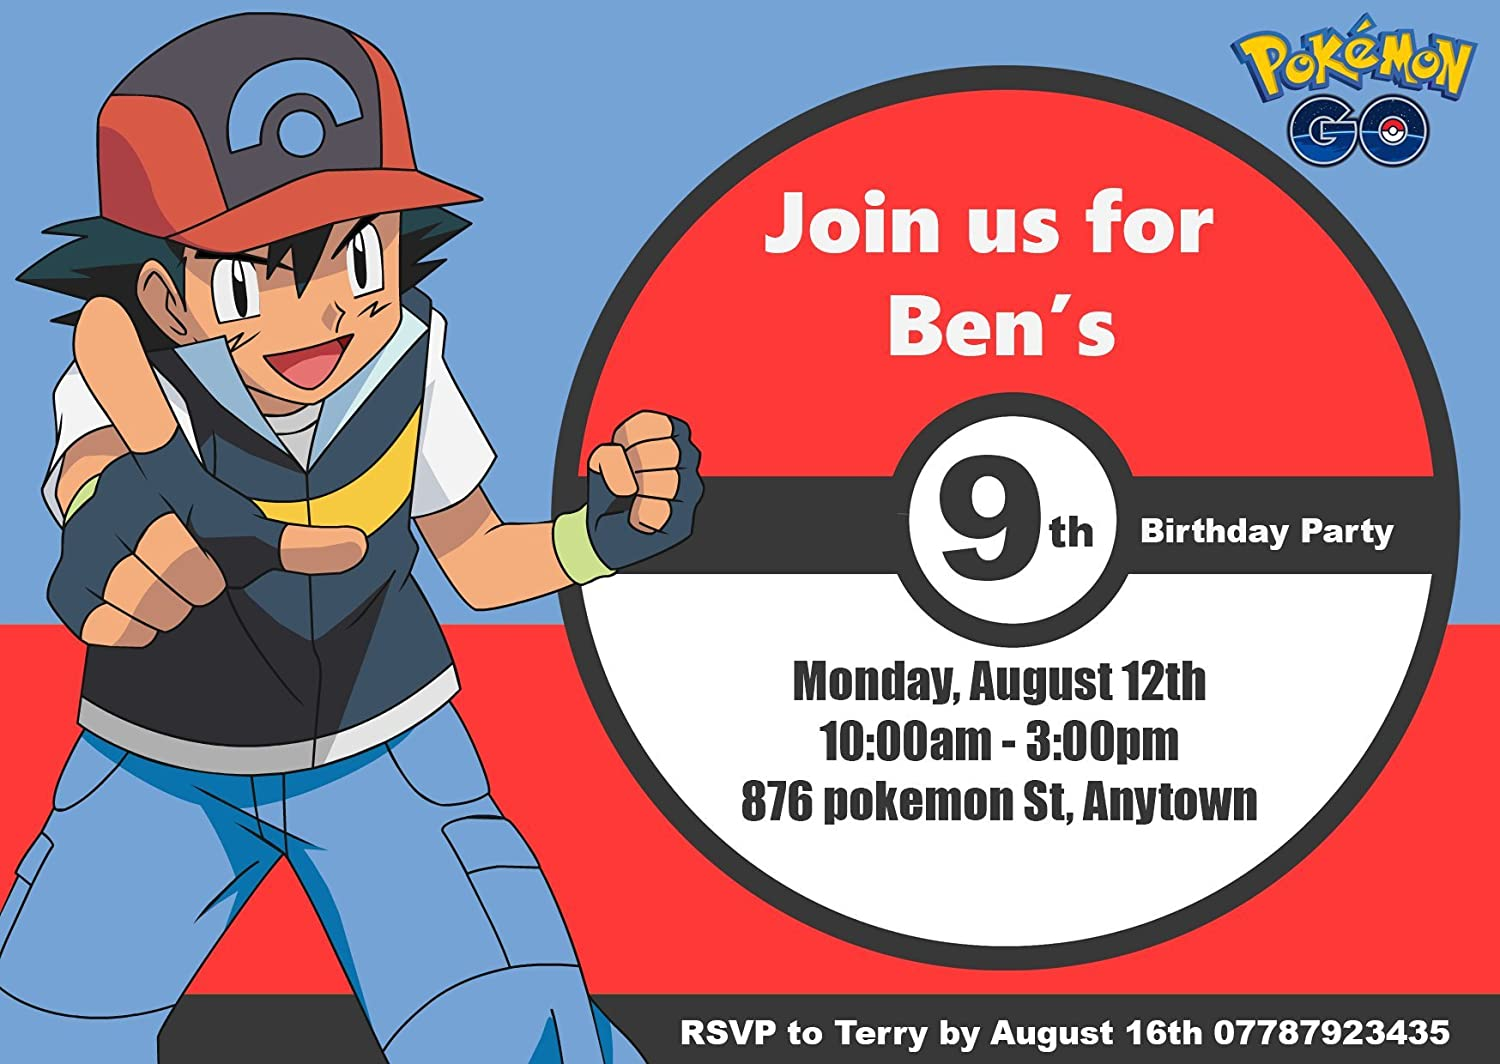 personalised pokemon go party invitations: Amazon.co.uk: Toys & Games